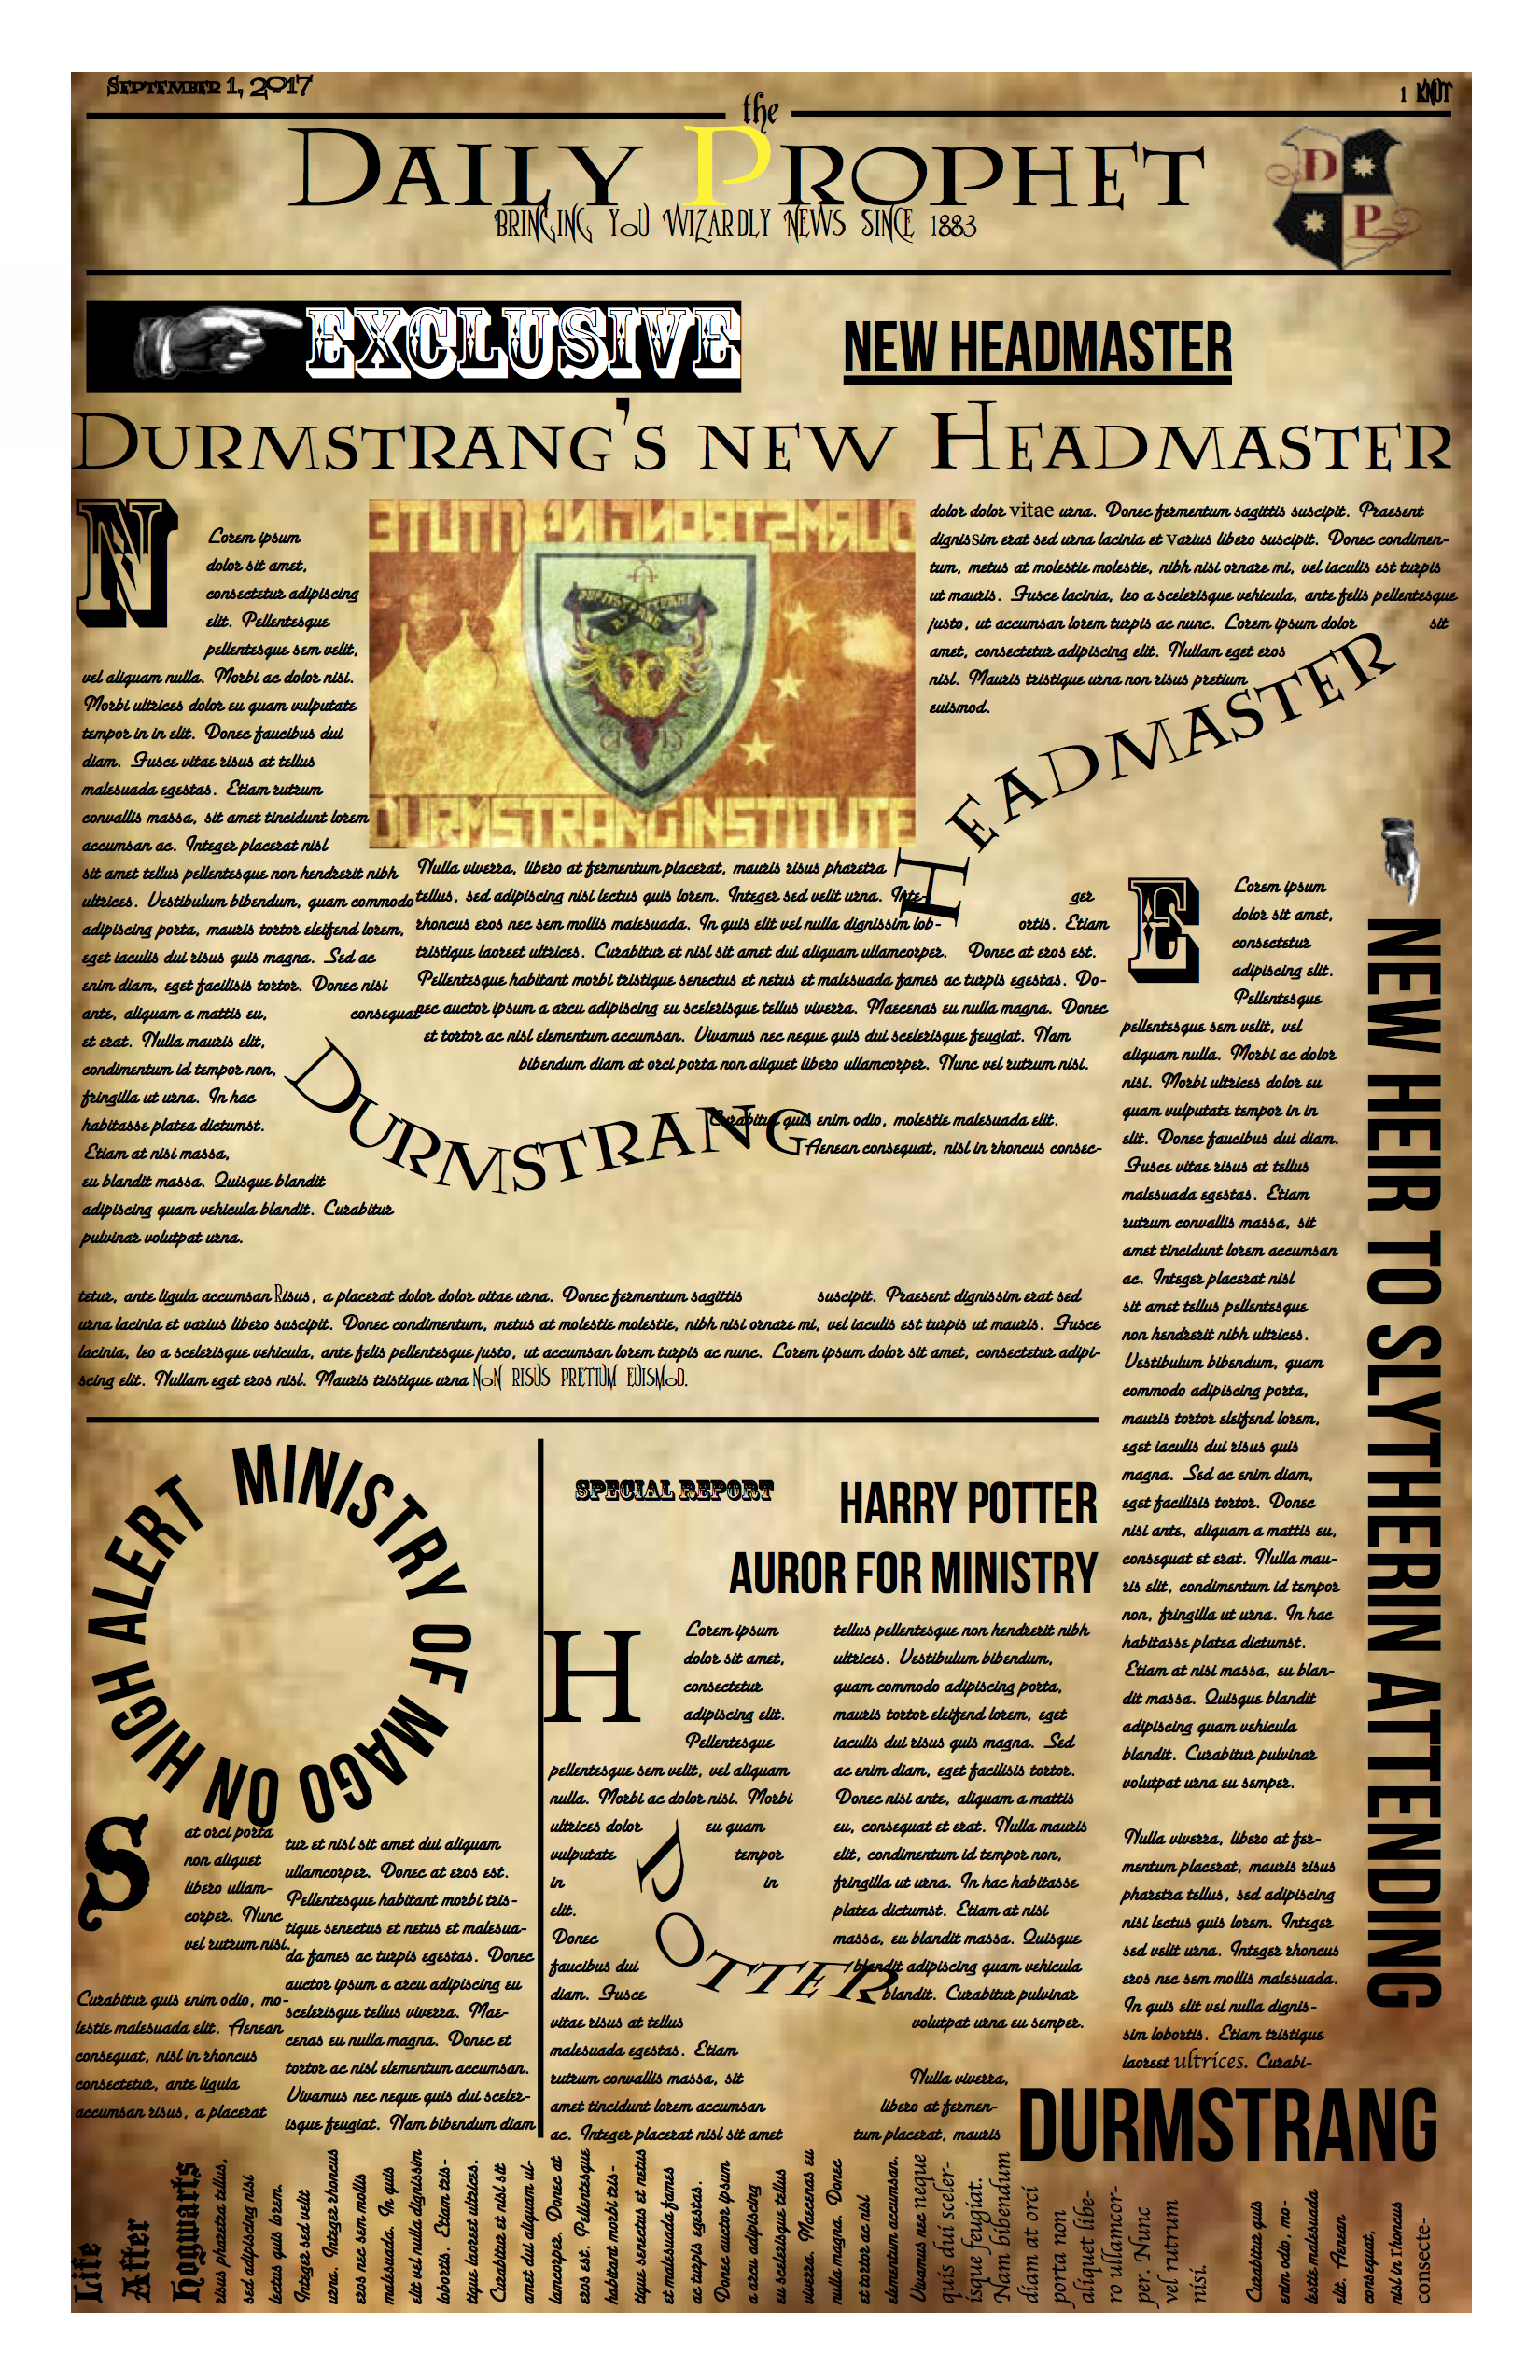 If you love Harry Potter, then you'll understand this weird and quirky newspaper layout. A homage to The Daily Prophet from the Harry Potter series by JK Rowling, this layout was completed using Photoshop and inDesign. It features floating headlines.